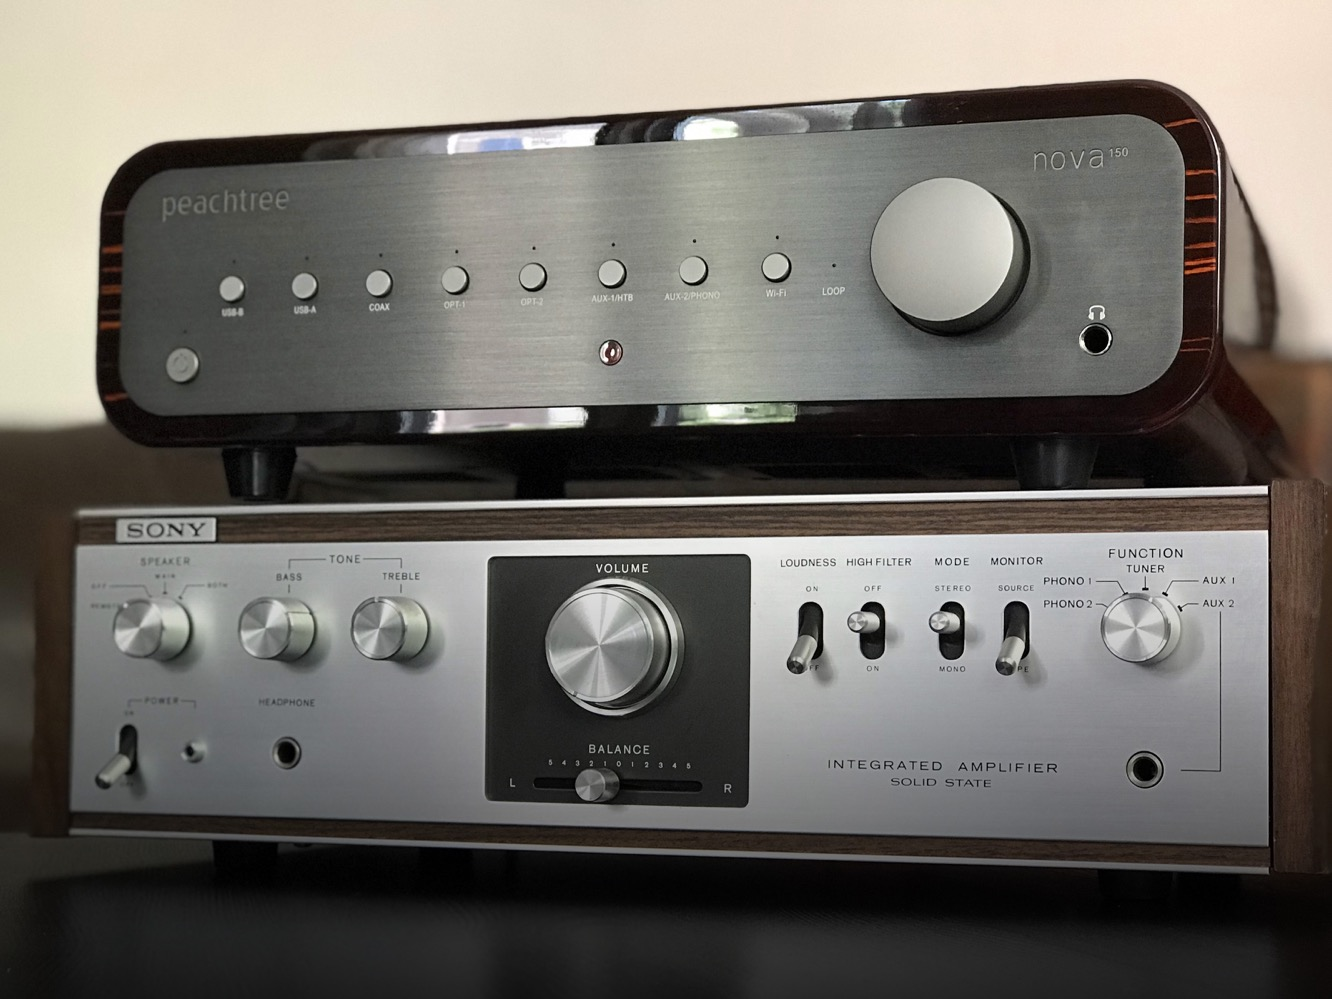 Review: Peachtree Nova150 Hi-Fi Amplifier 8